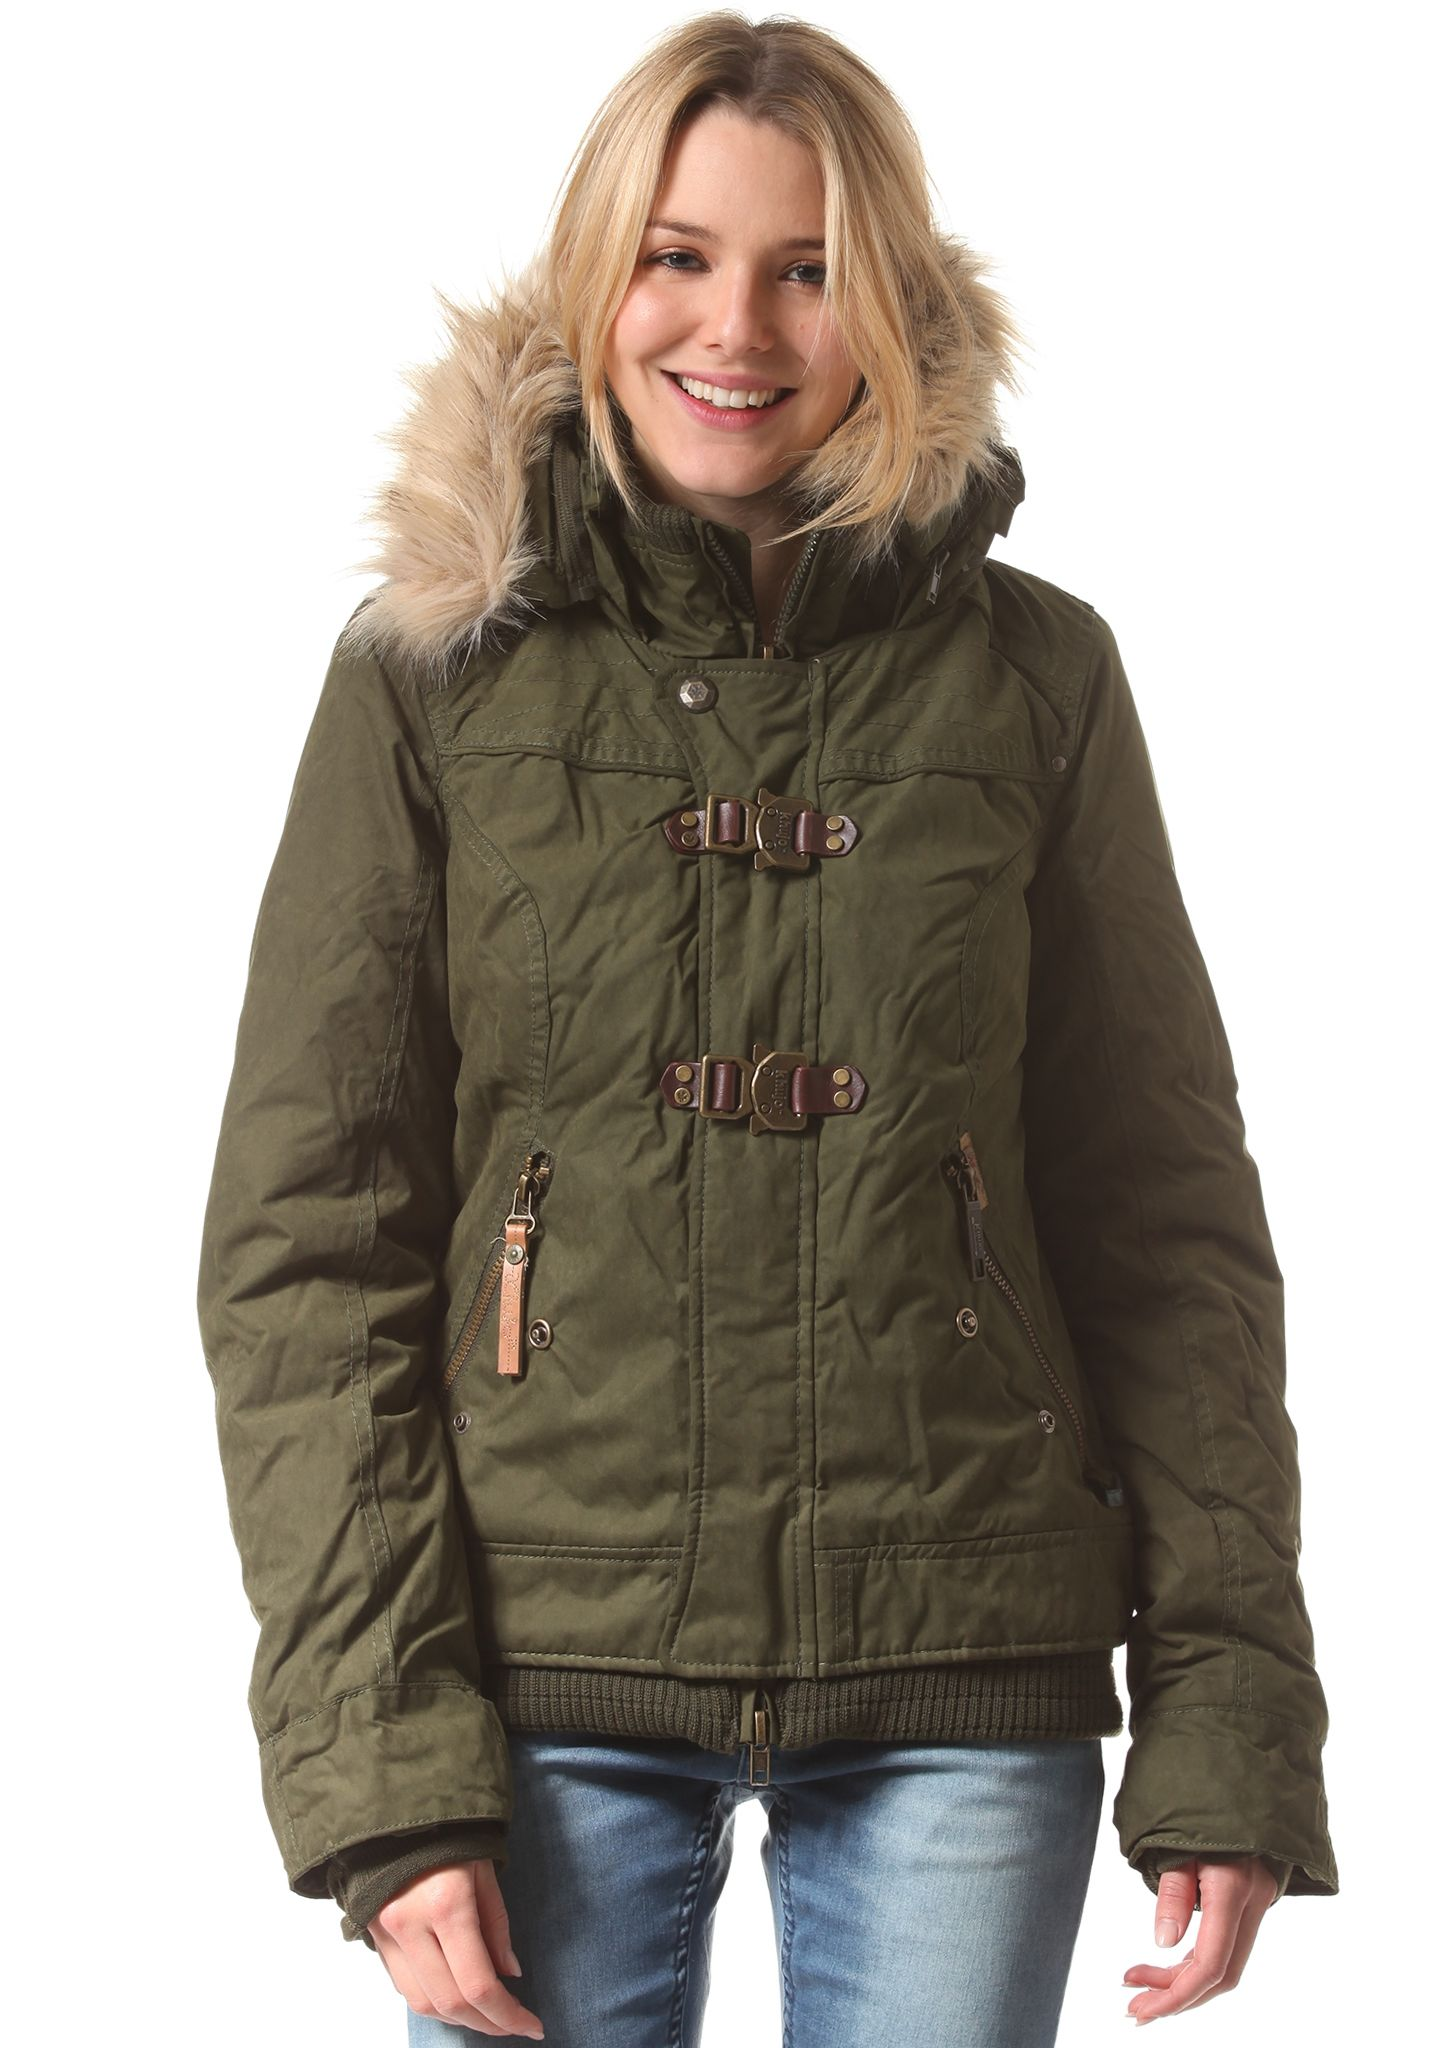 Khujo ashley jacke damen olive